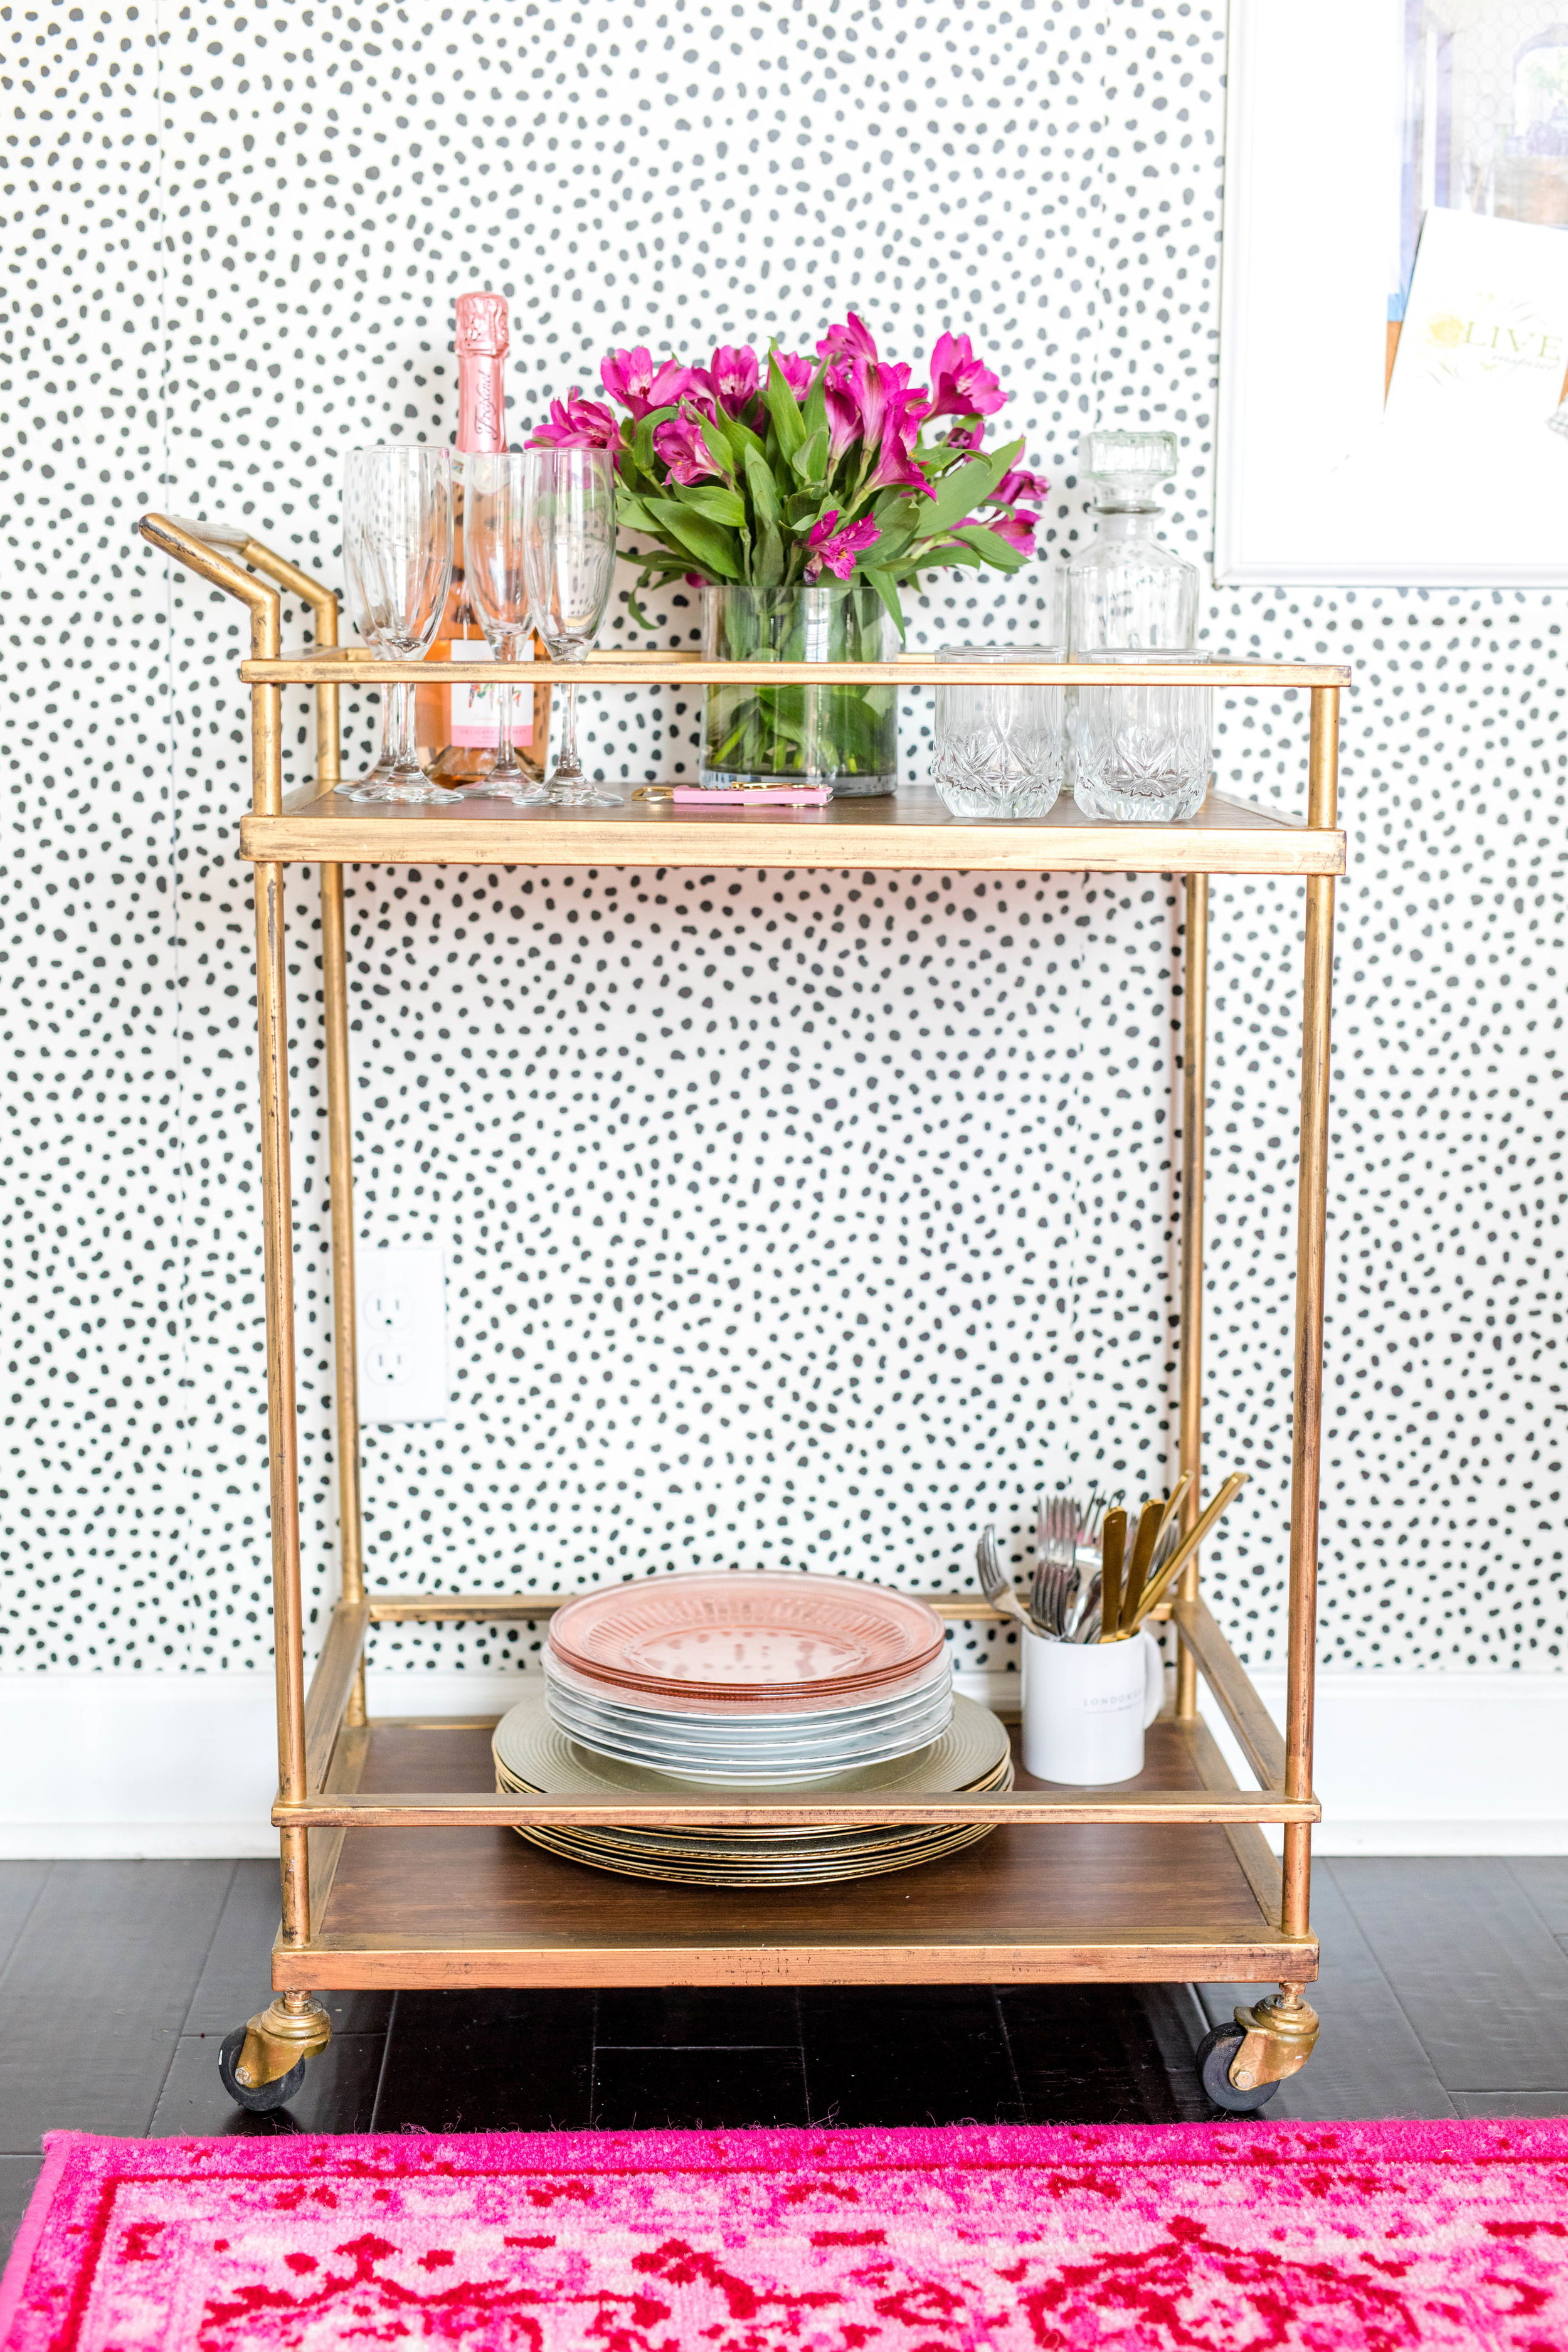 The wall paper is from  Jillian Harris  partnership with MK Wallpaper, and the rug is from  RUG USA.